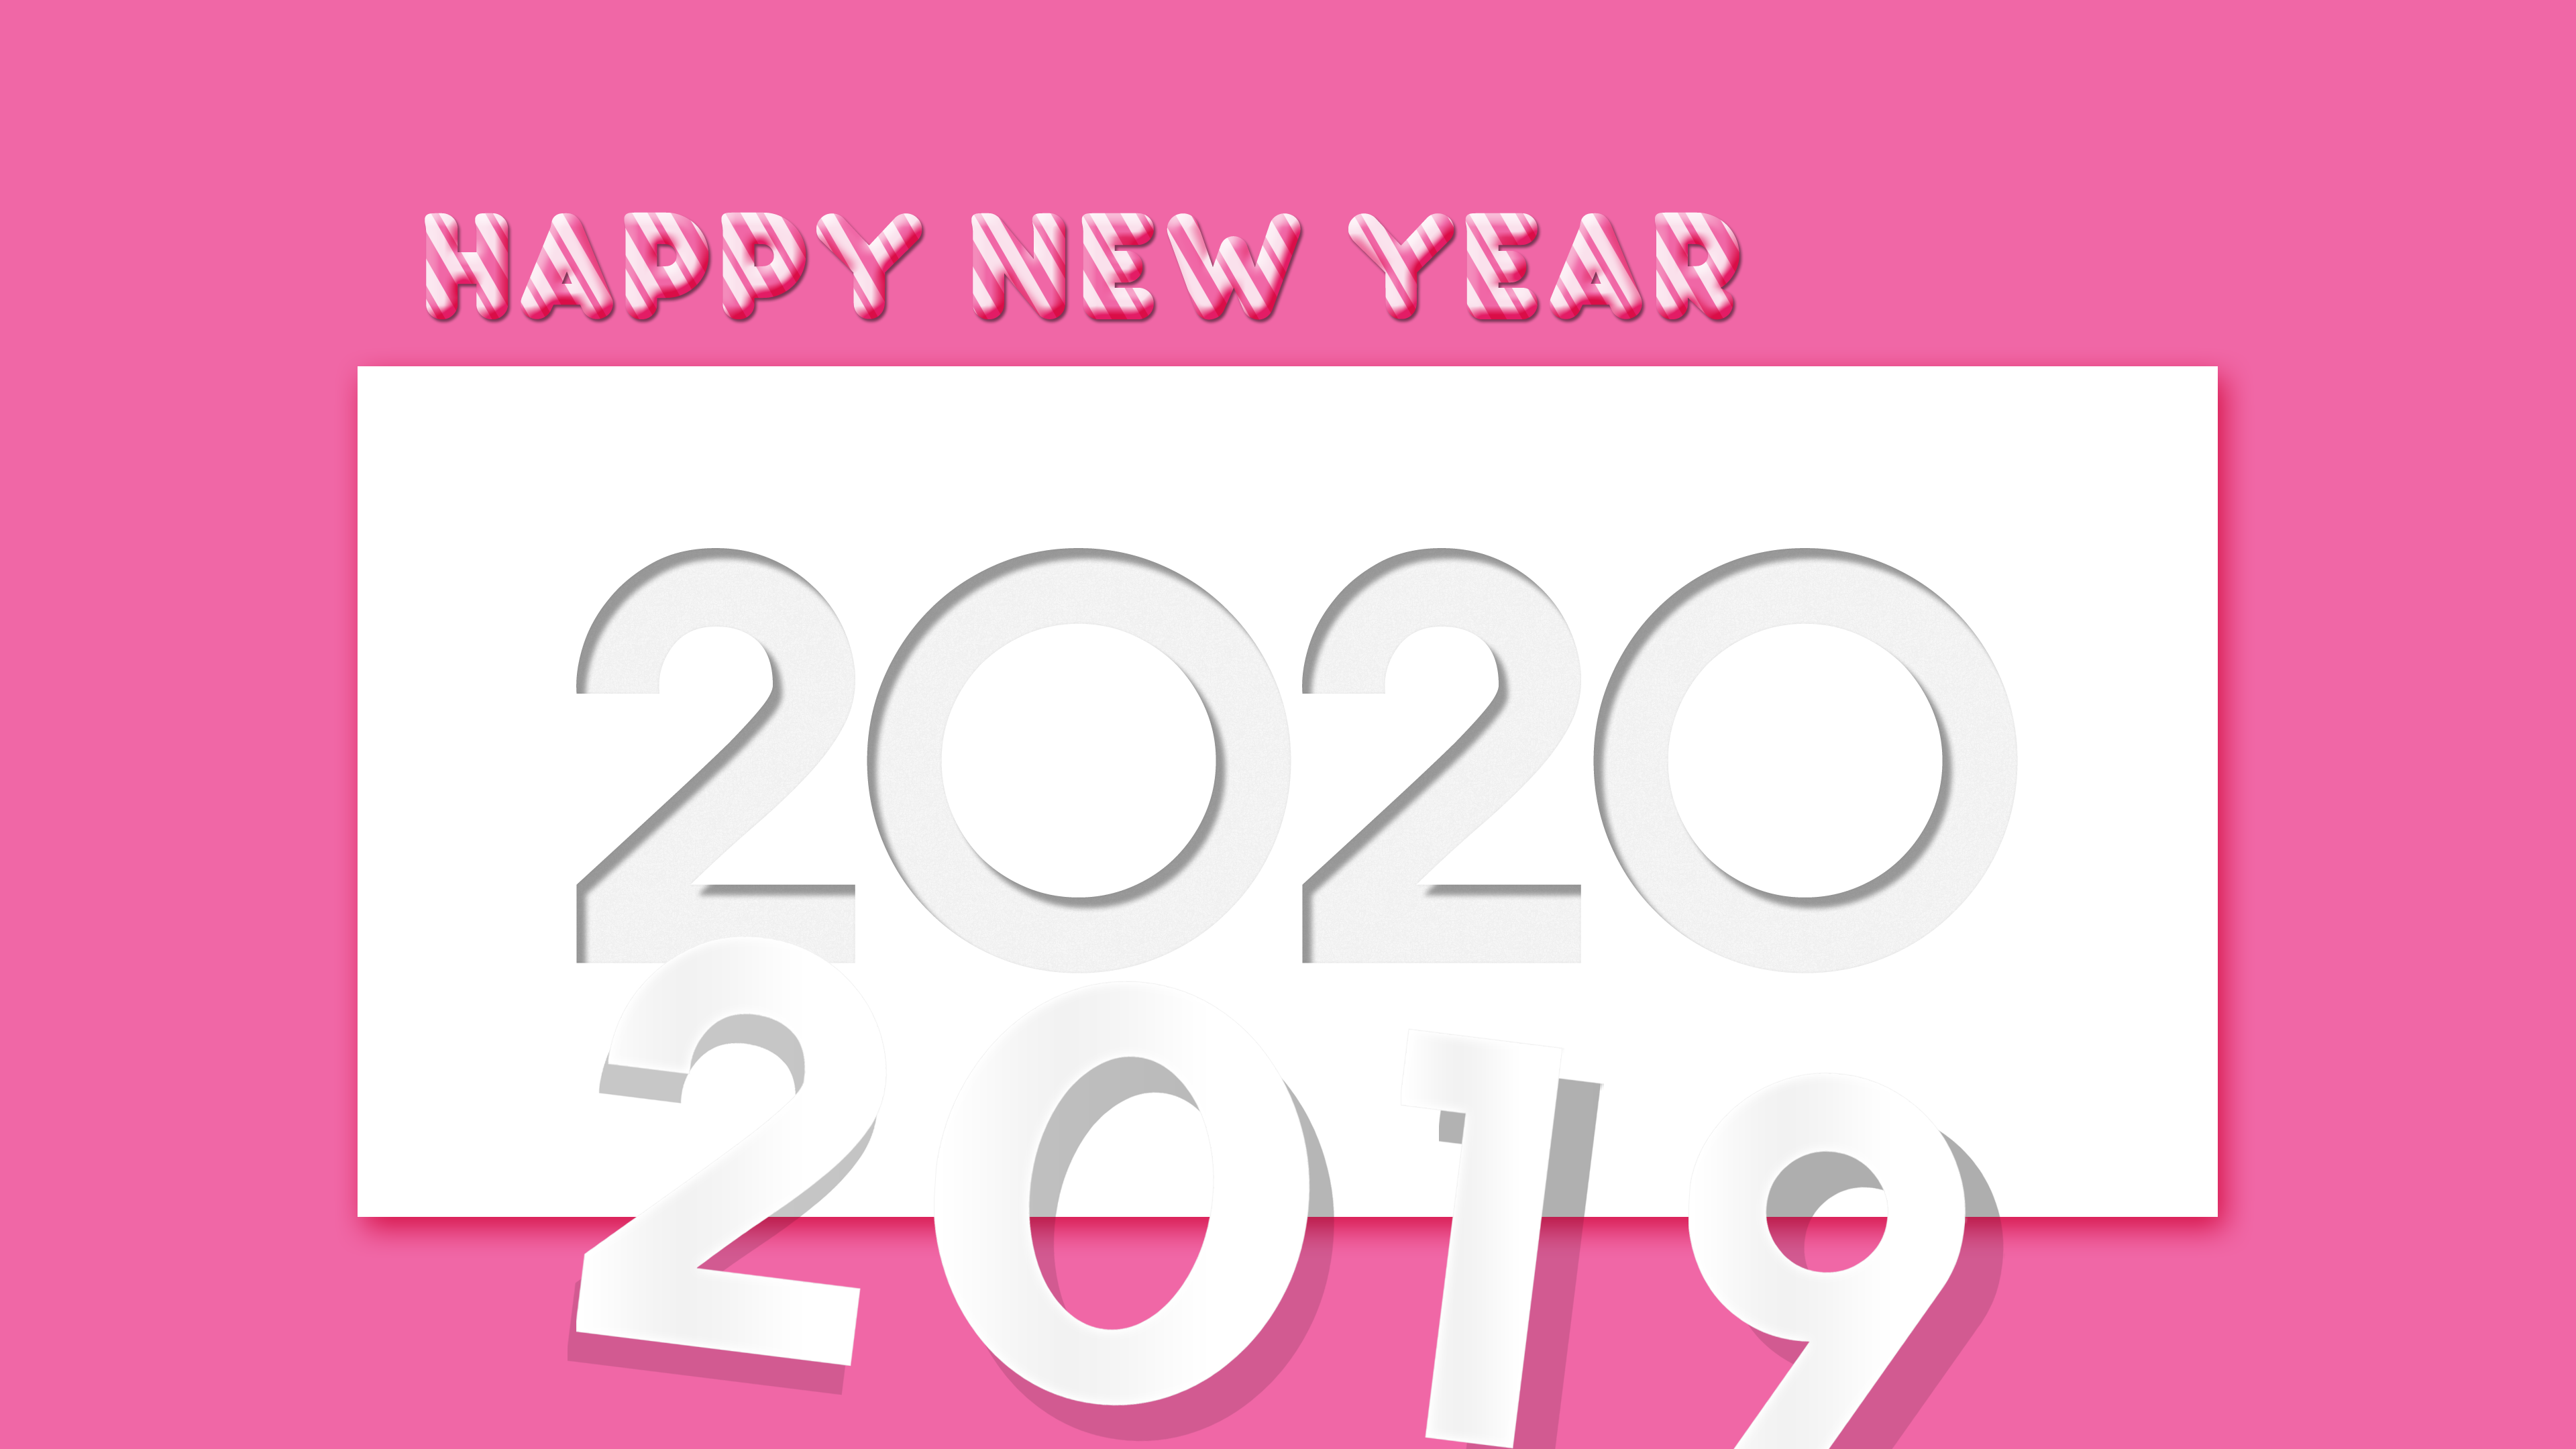 New Year 2020 4k Ultra HD Wallpaper Background Image 3840x2160 3840x2160